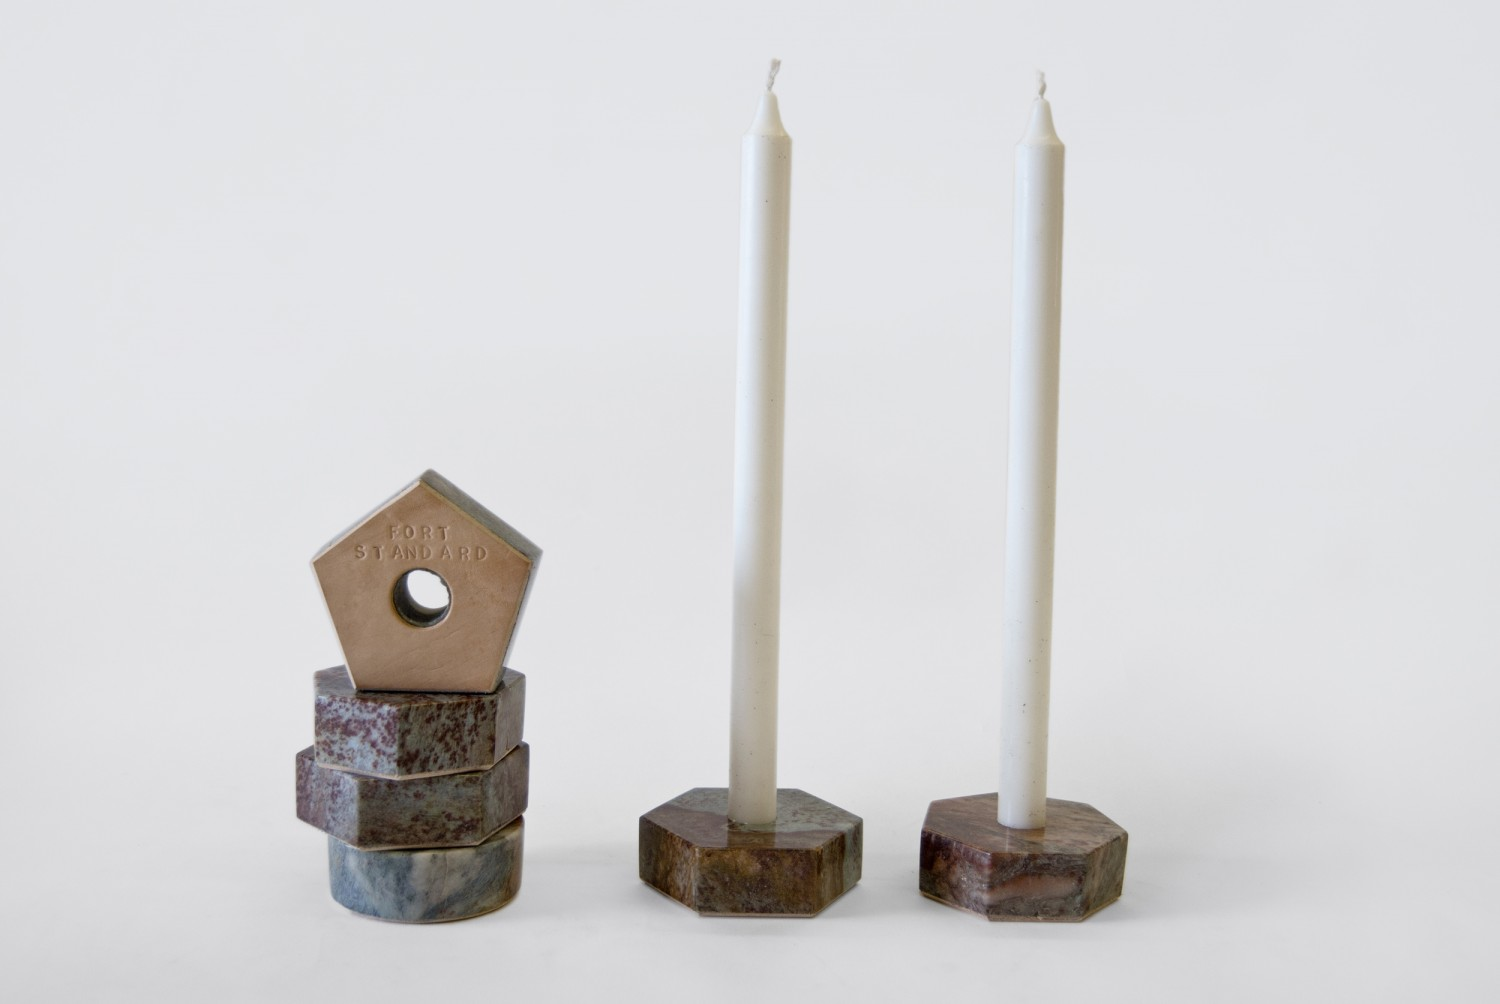 Fort Standard Stone Candle Holders on flodeau.com 5